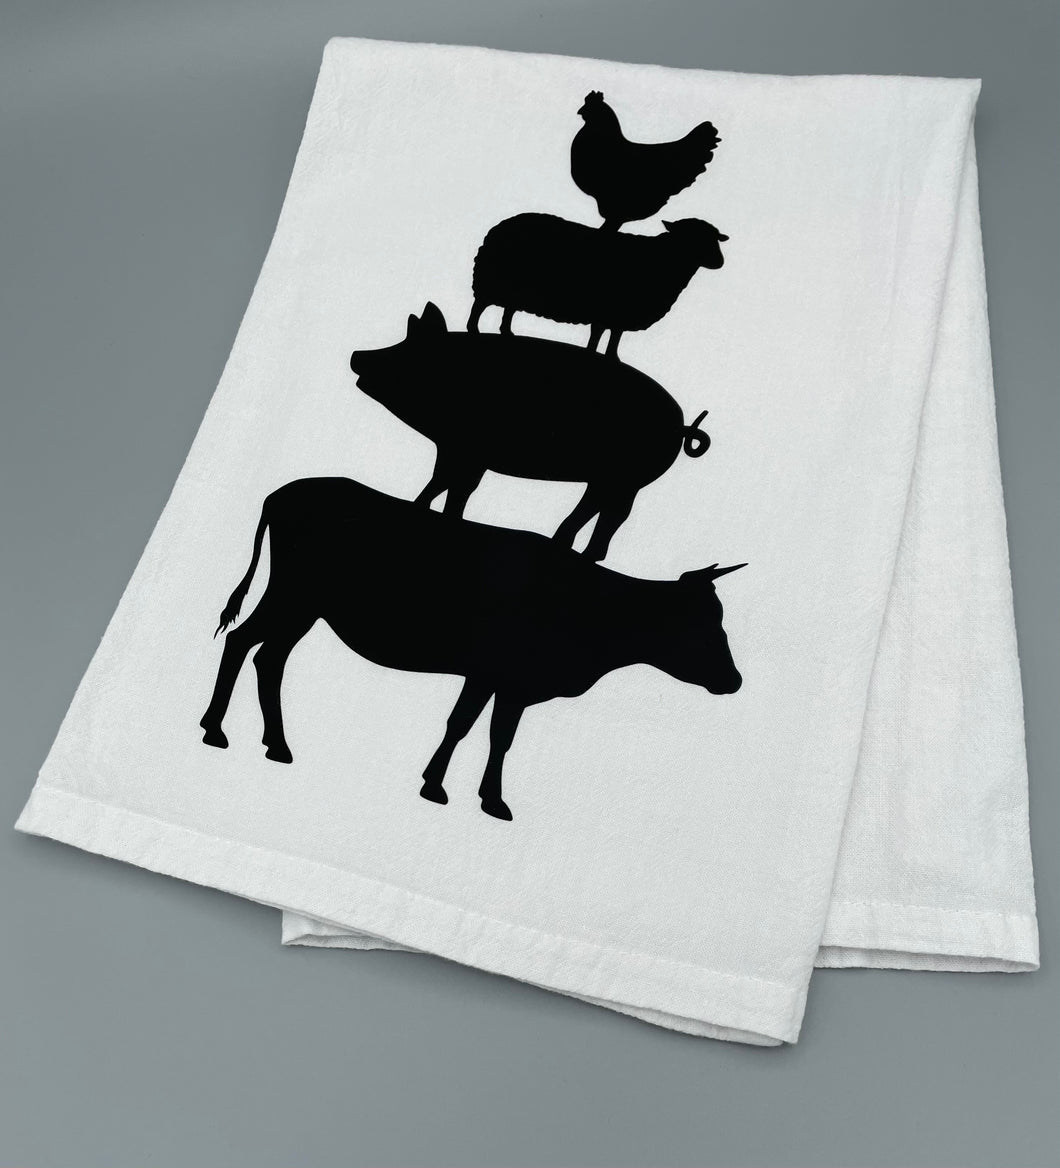 Farm Animal Silhouette Towel